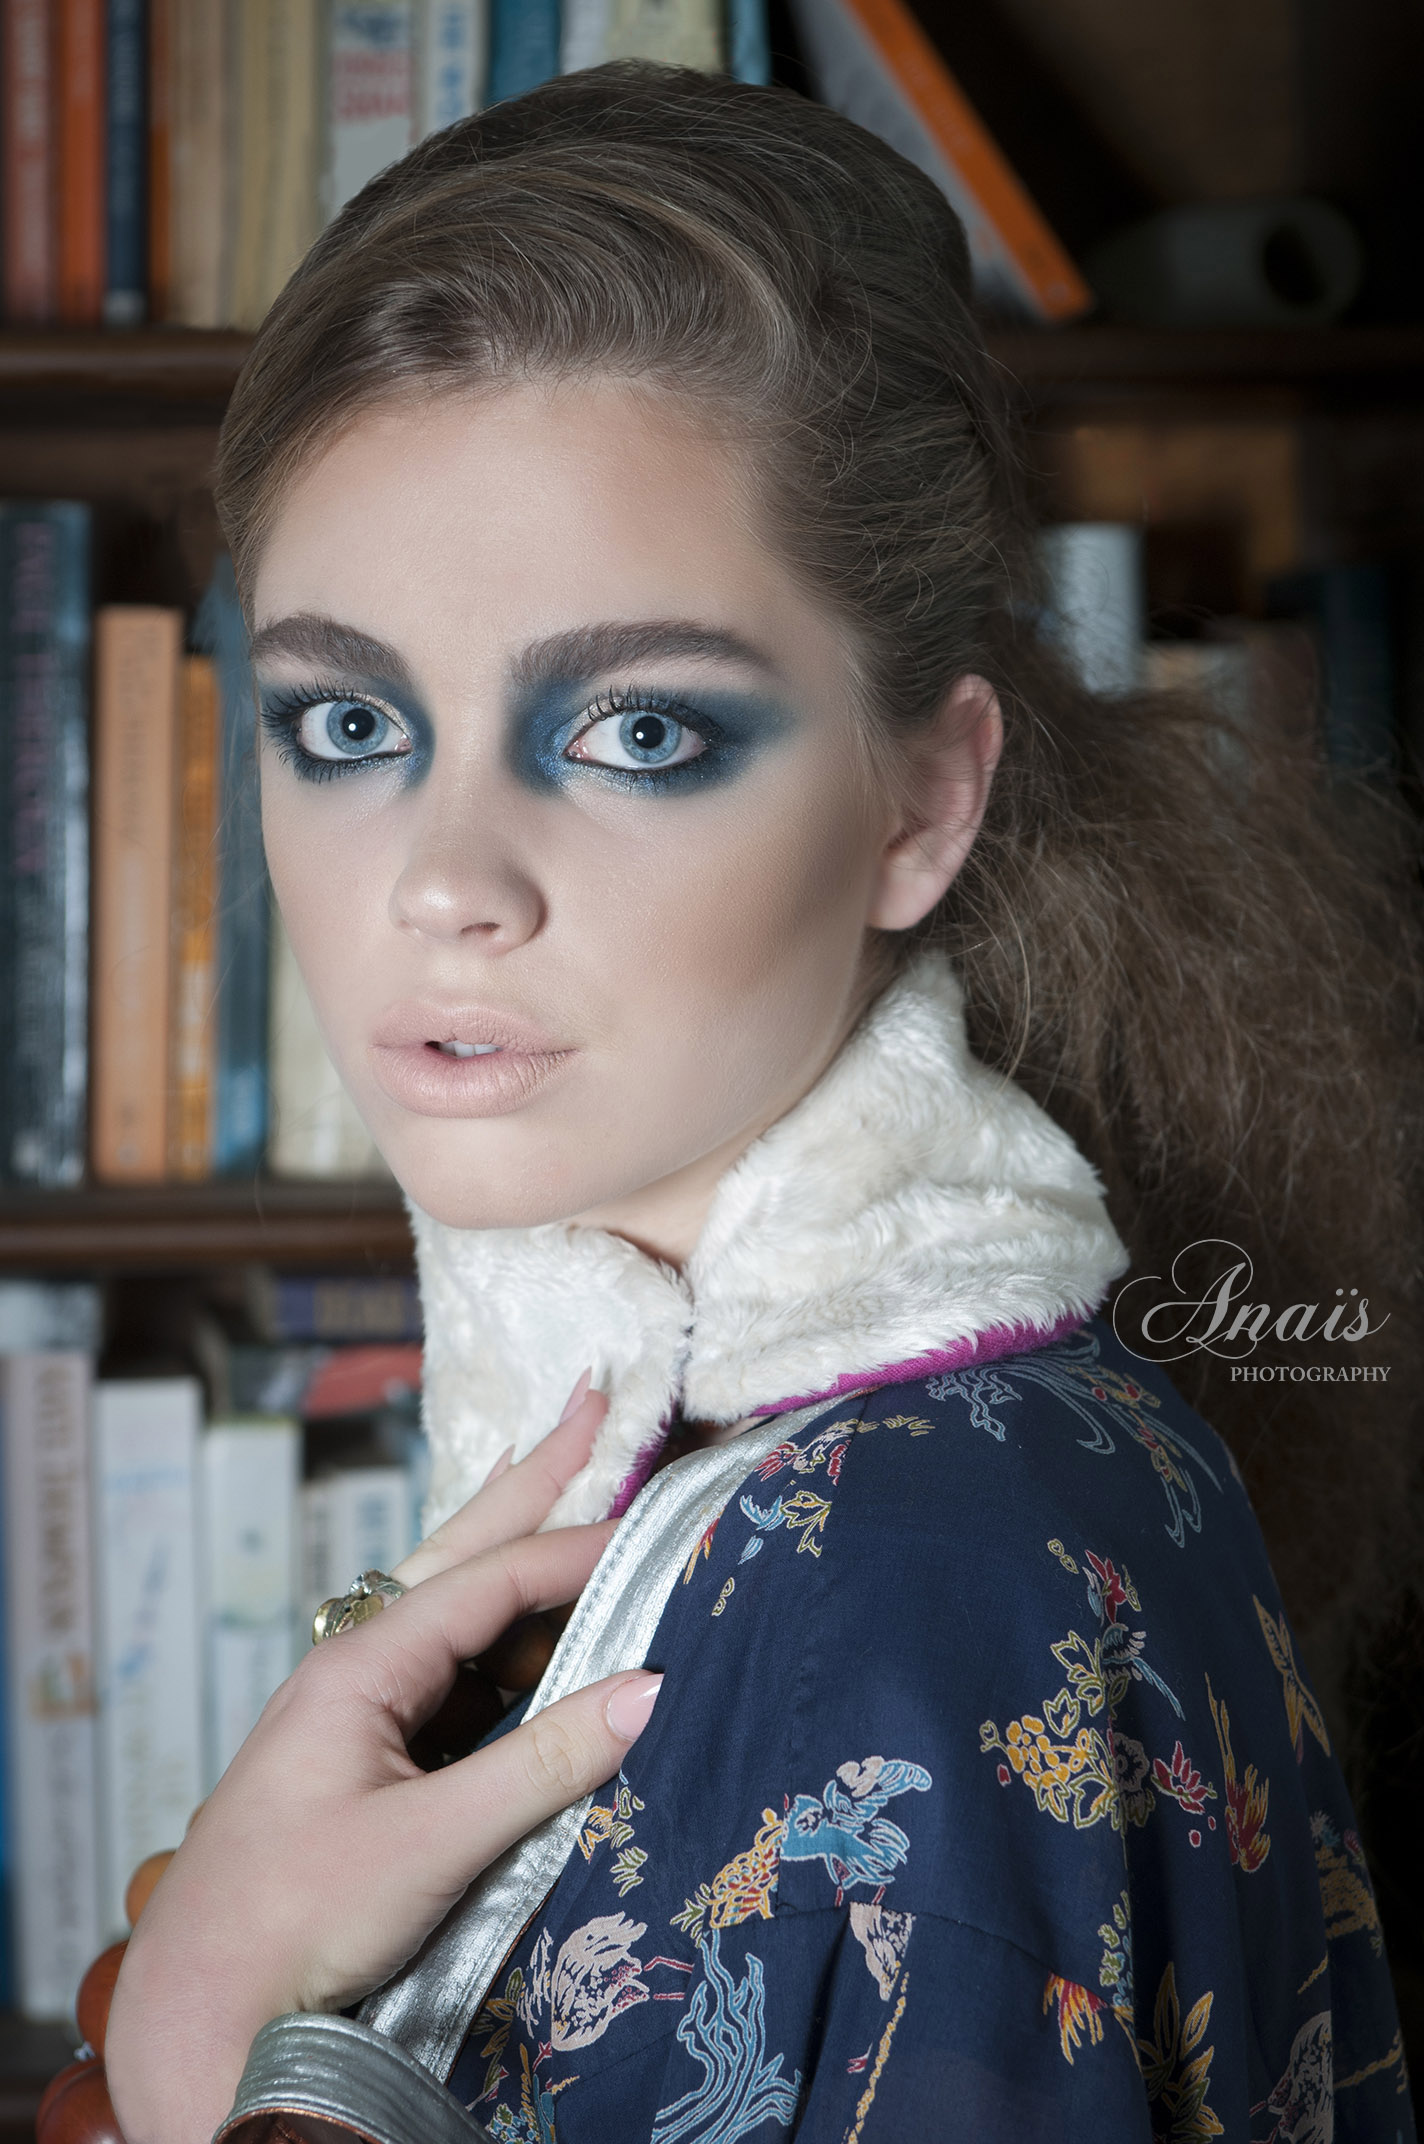 Anais Chaine Photography Auckland French photographer fashion Selector Lucy designer clothing Beauty portrait